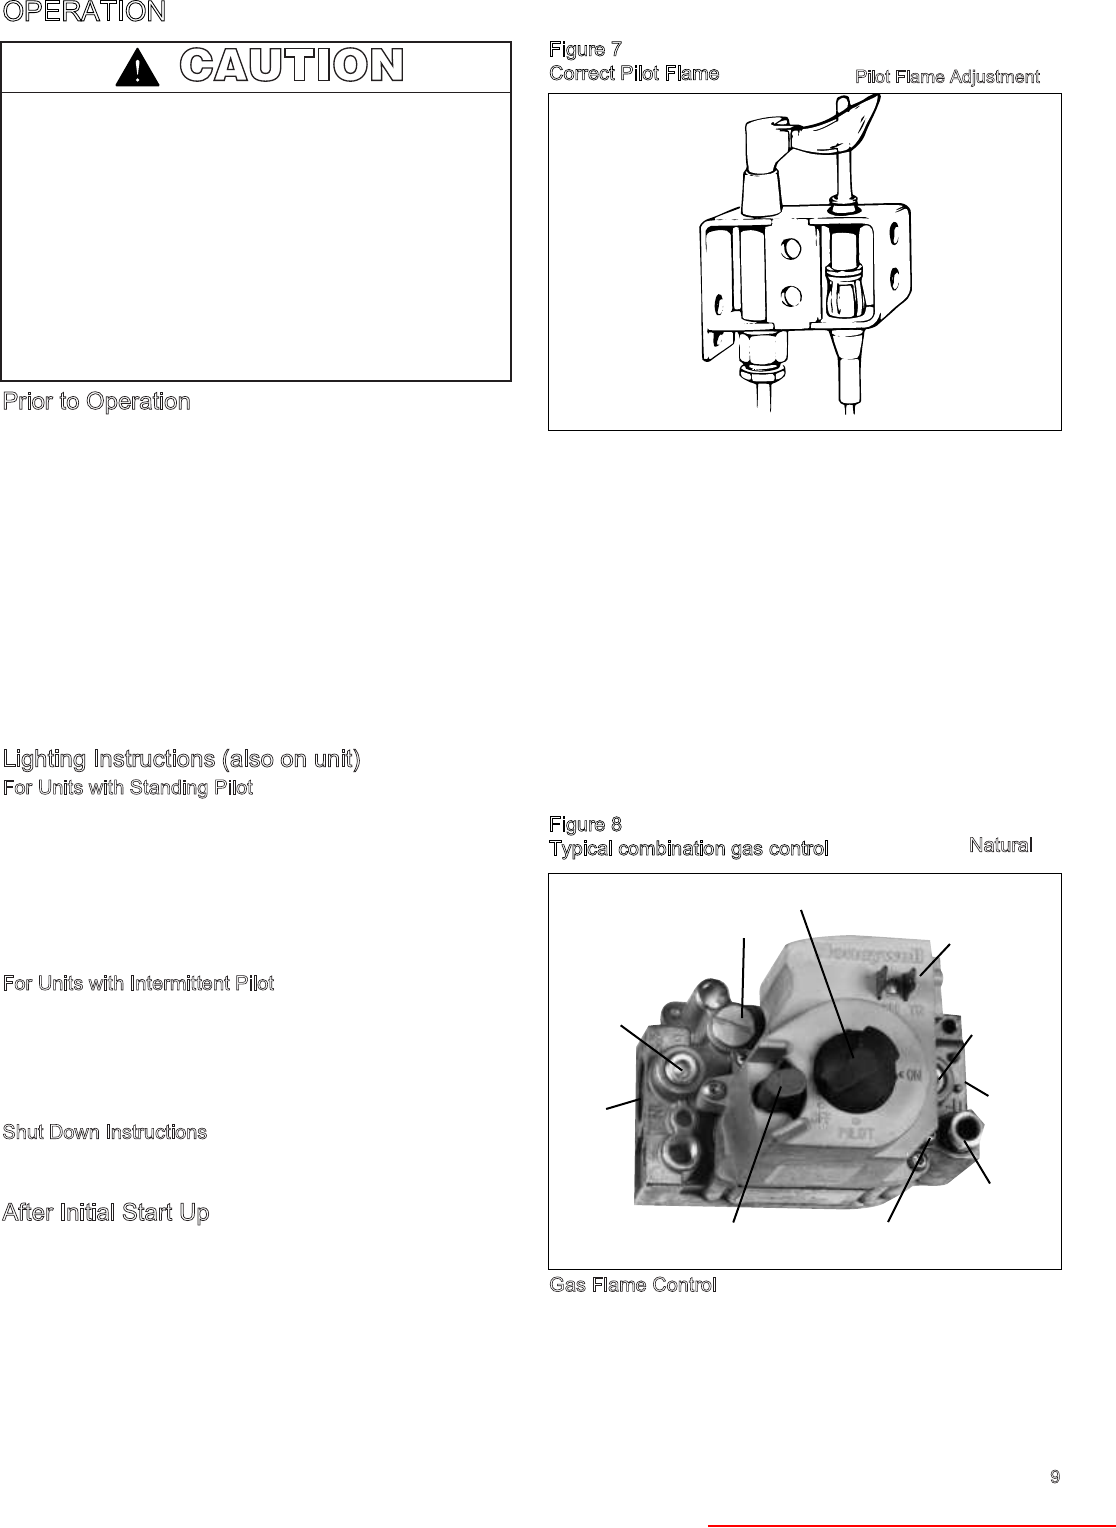 bowin gas heater user manual